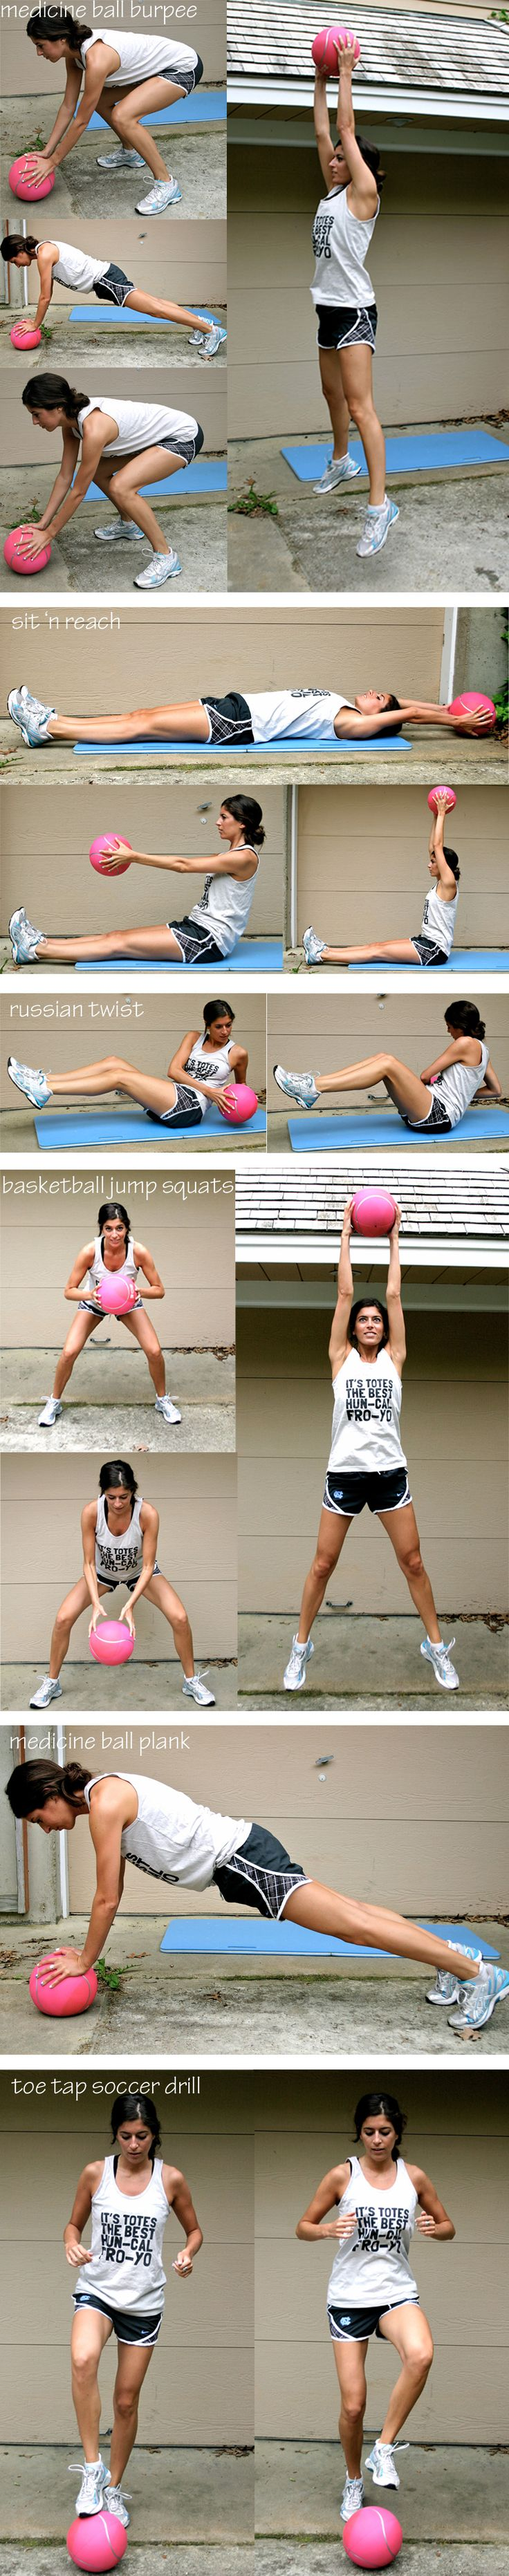 20 Best Images About Fitness Medicine Ball On Pinterest